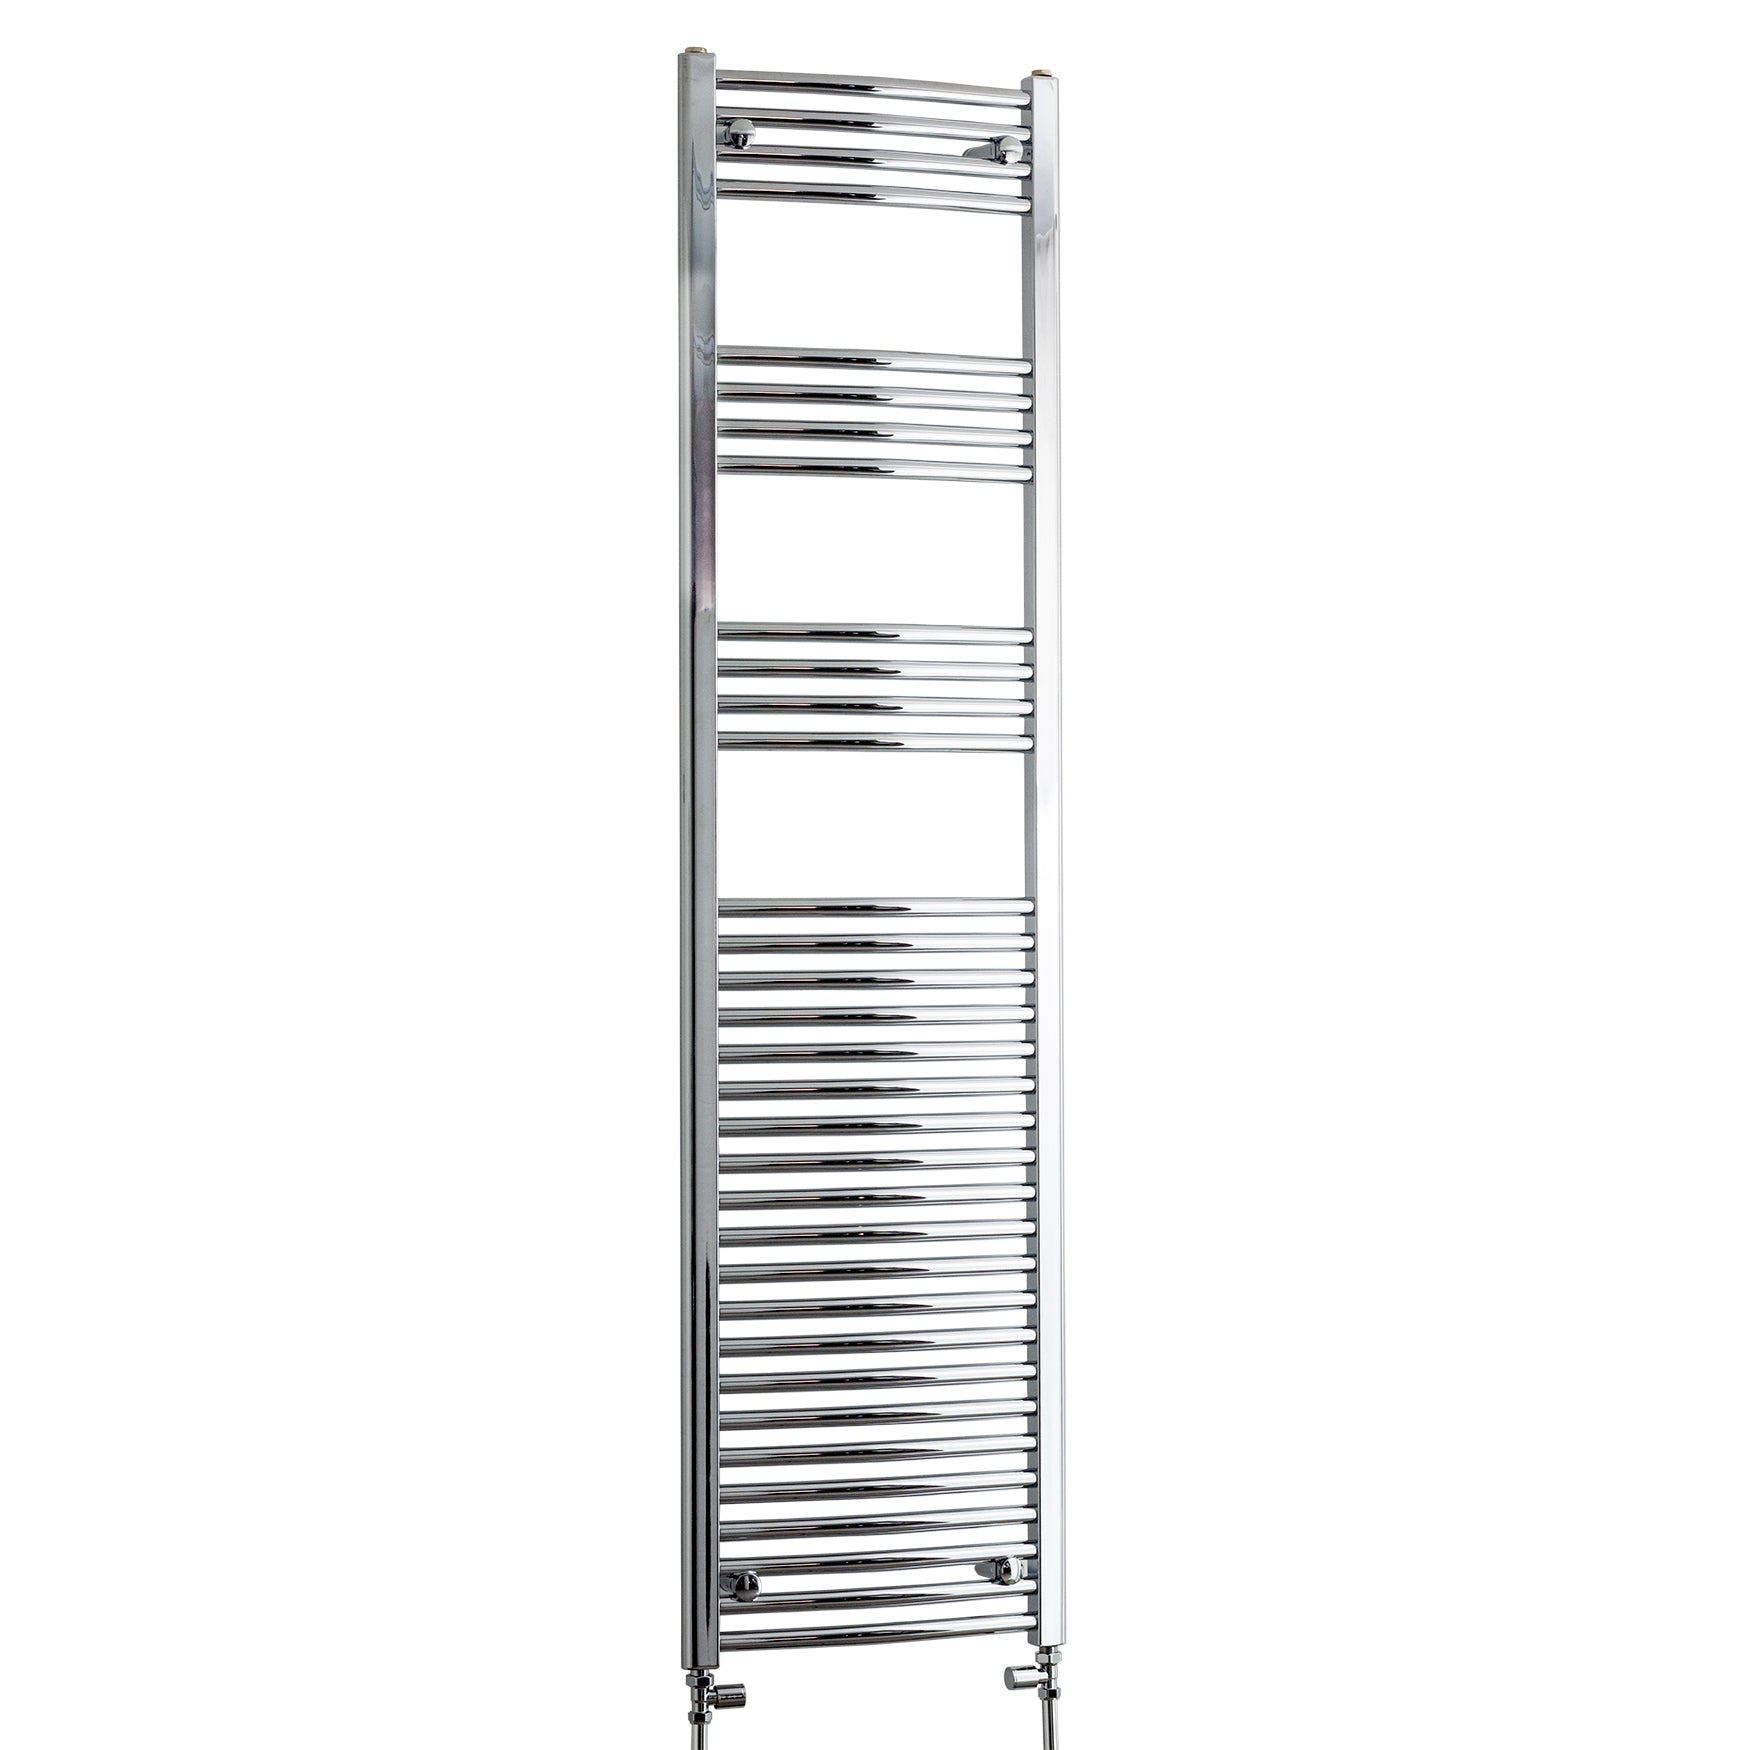 450mm Wide 1800mm High Curved Chrome Heated Towel Rail Radiator HTR